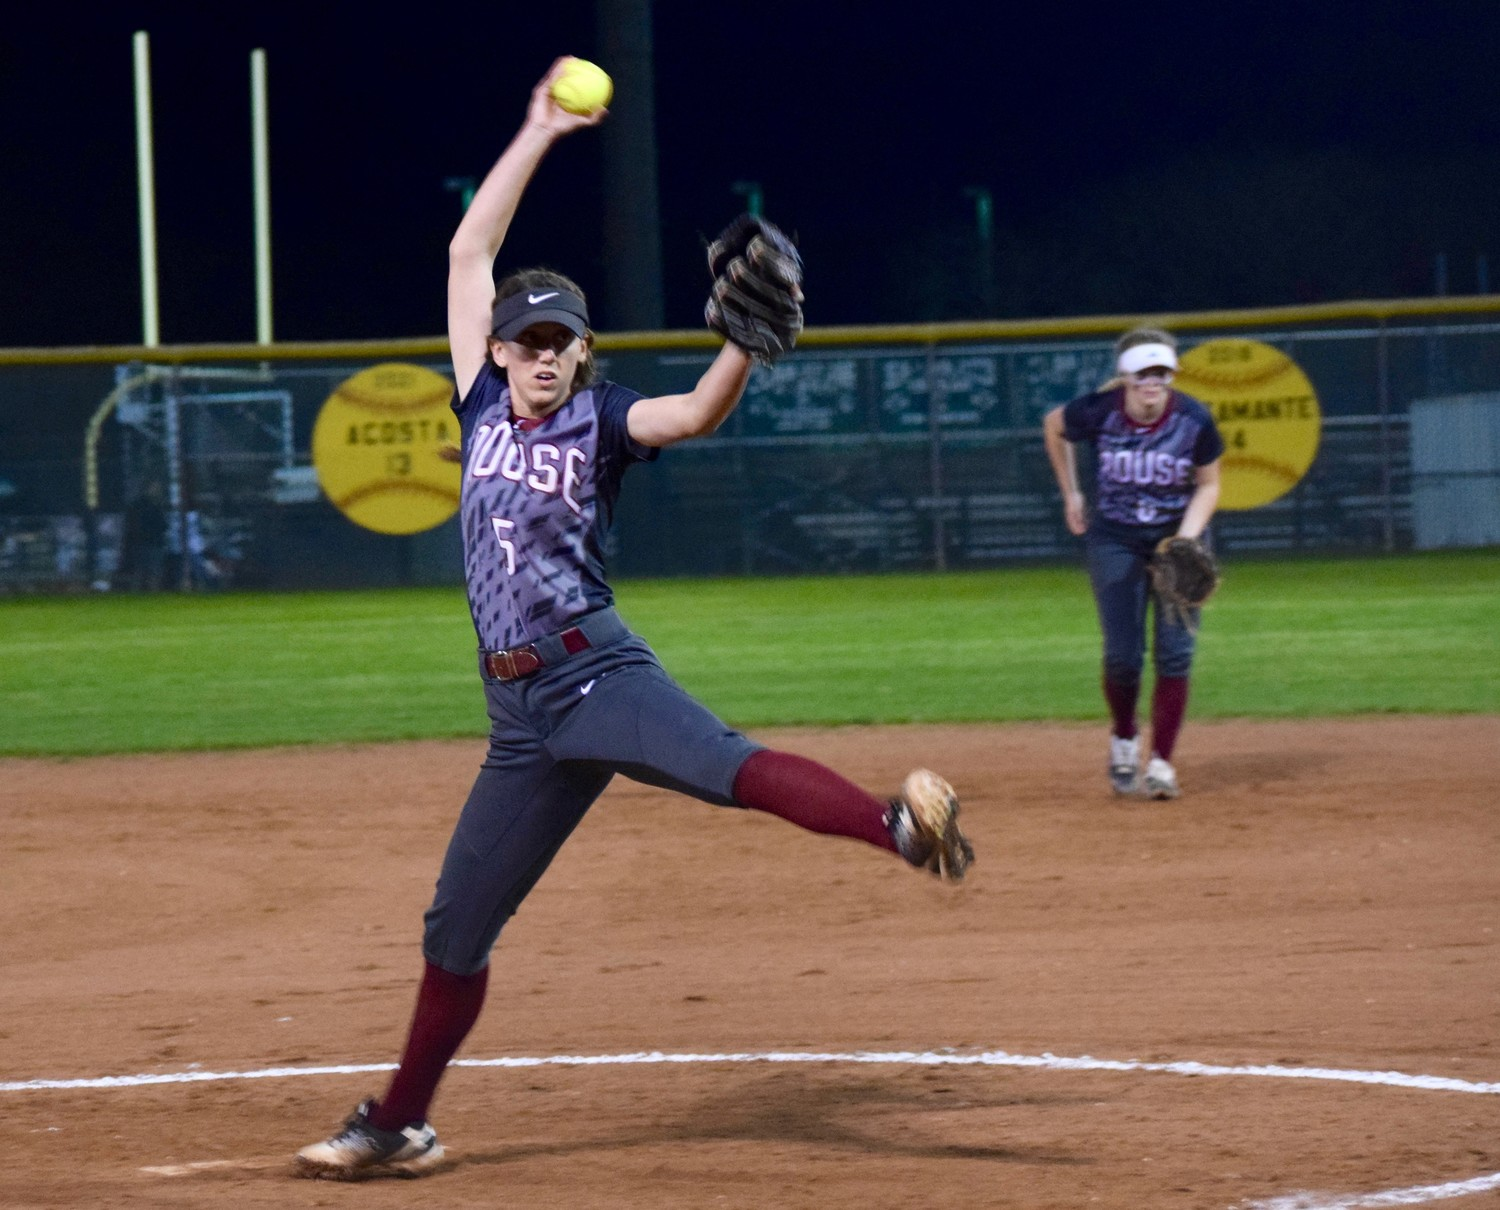 Maggie Edwards allowed nine runs and six hits in 5.2 innings but Rouse lost to Cedar Park 9-6 on Friday night.